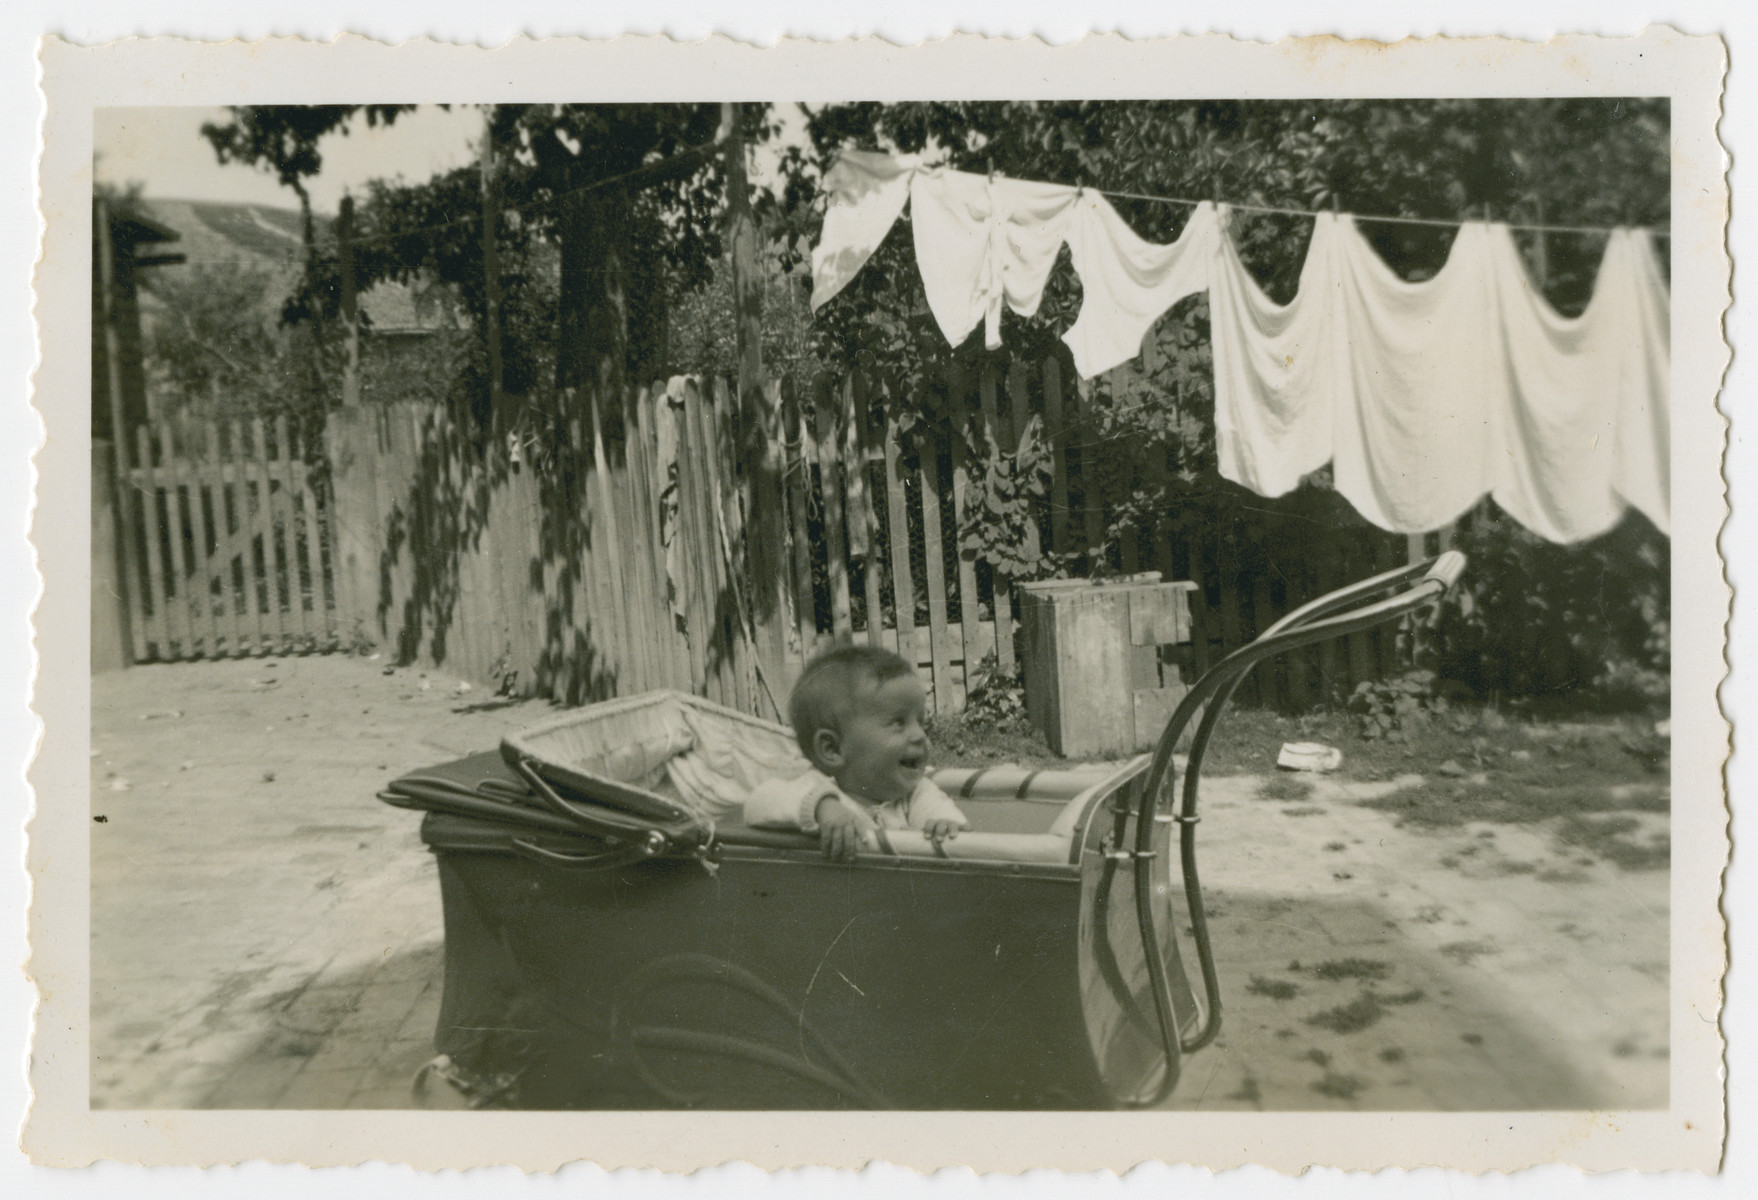 Werner Hirsch sits in his baby carriage in a yard in front of linens drying on a line.